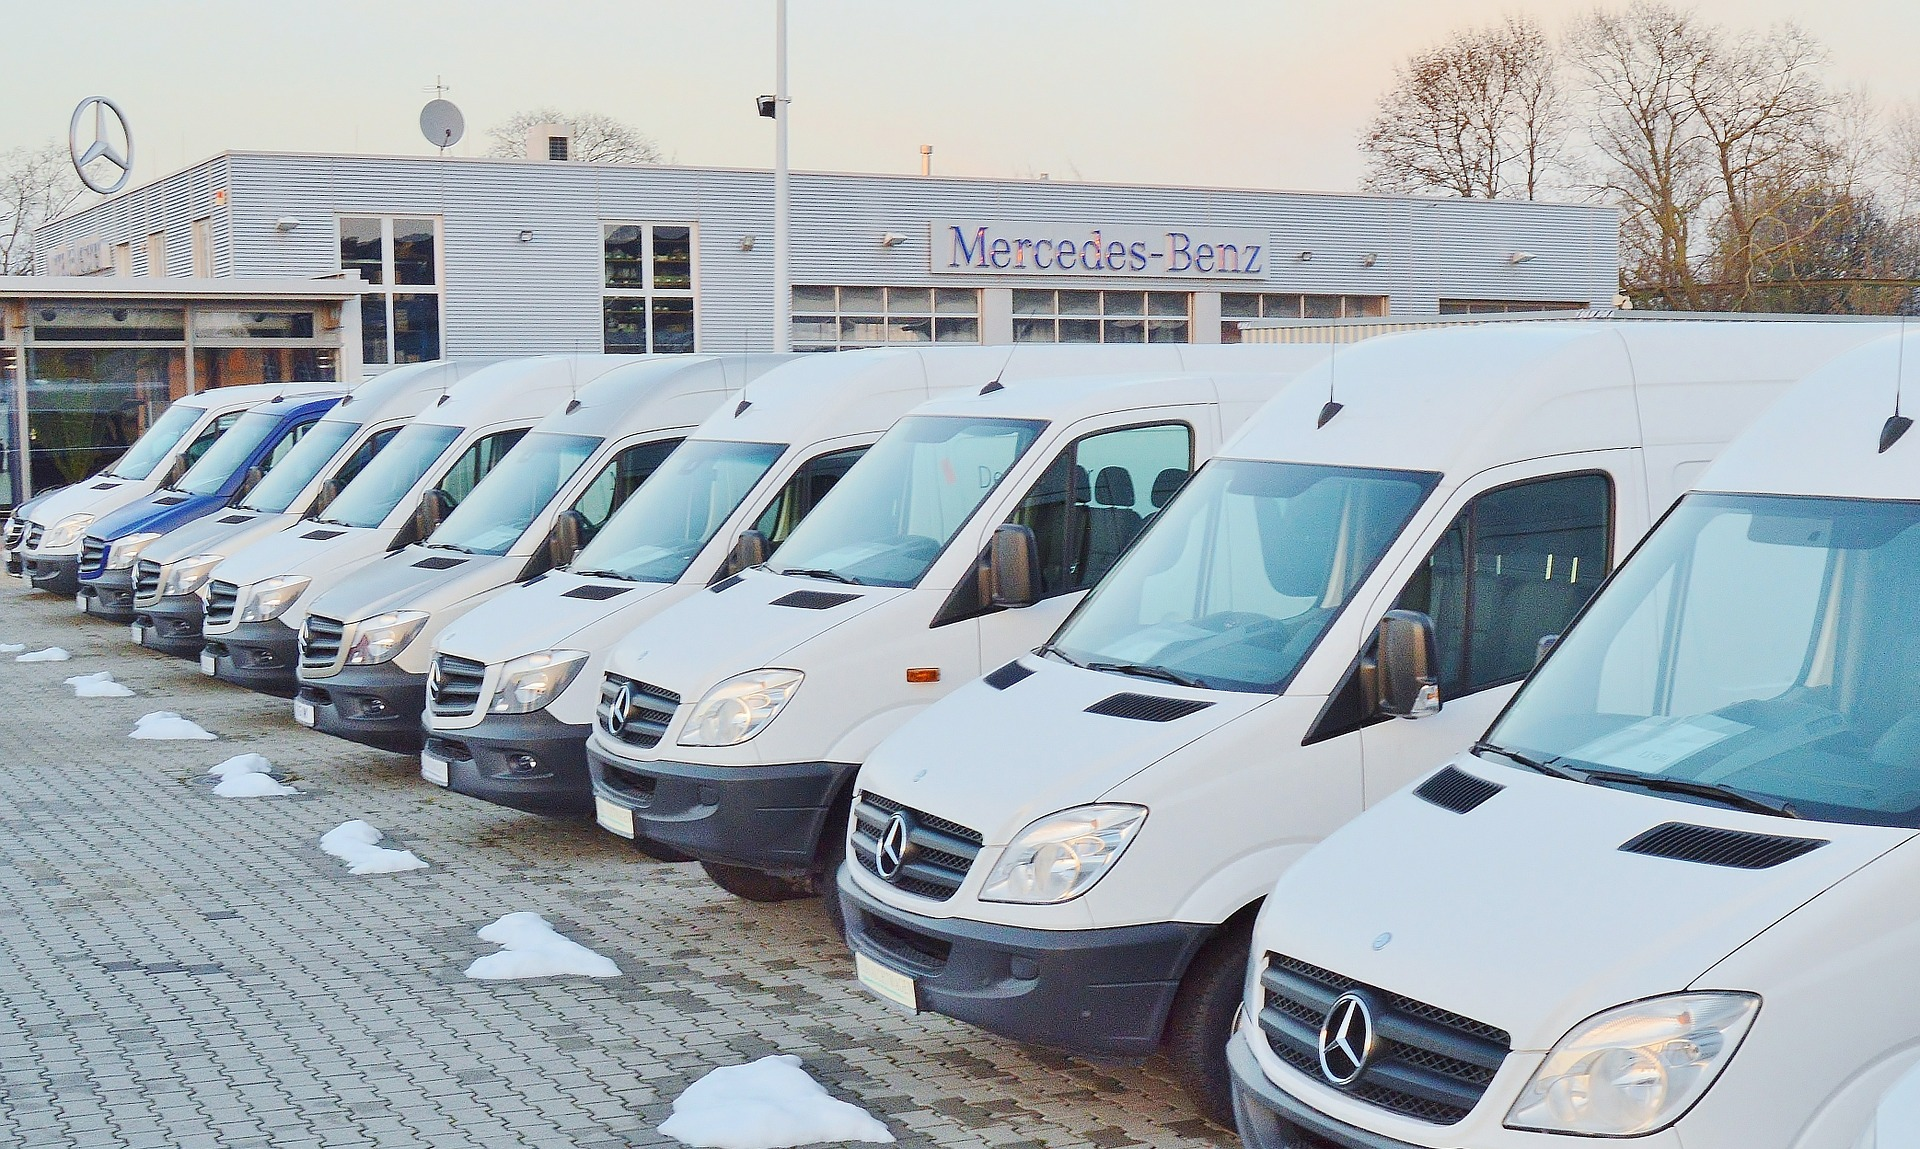 A fleet of white vans that are parked